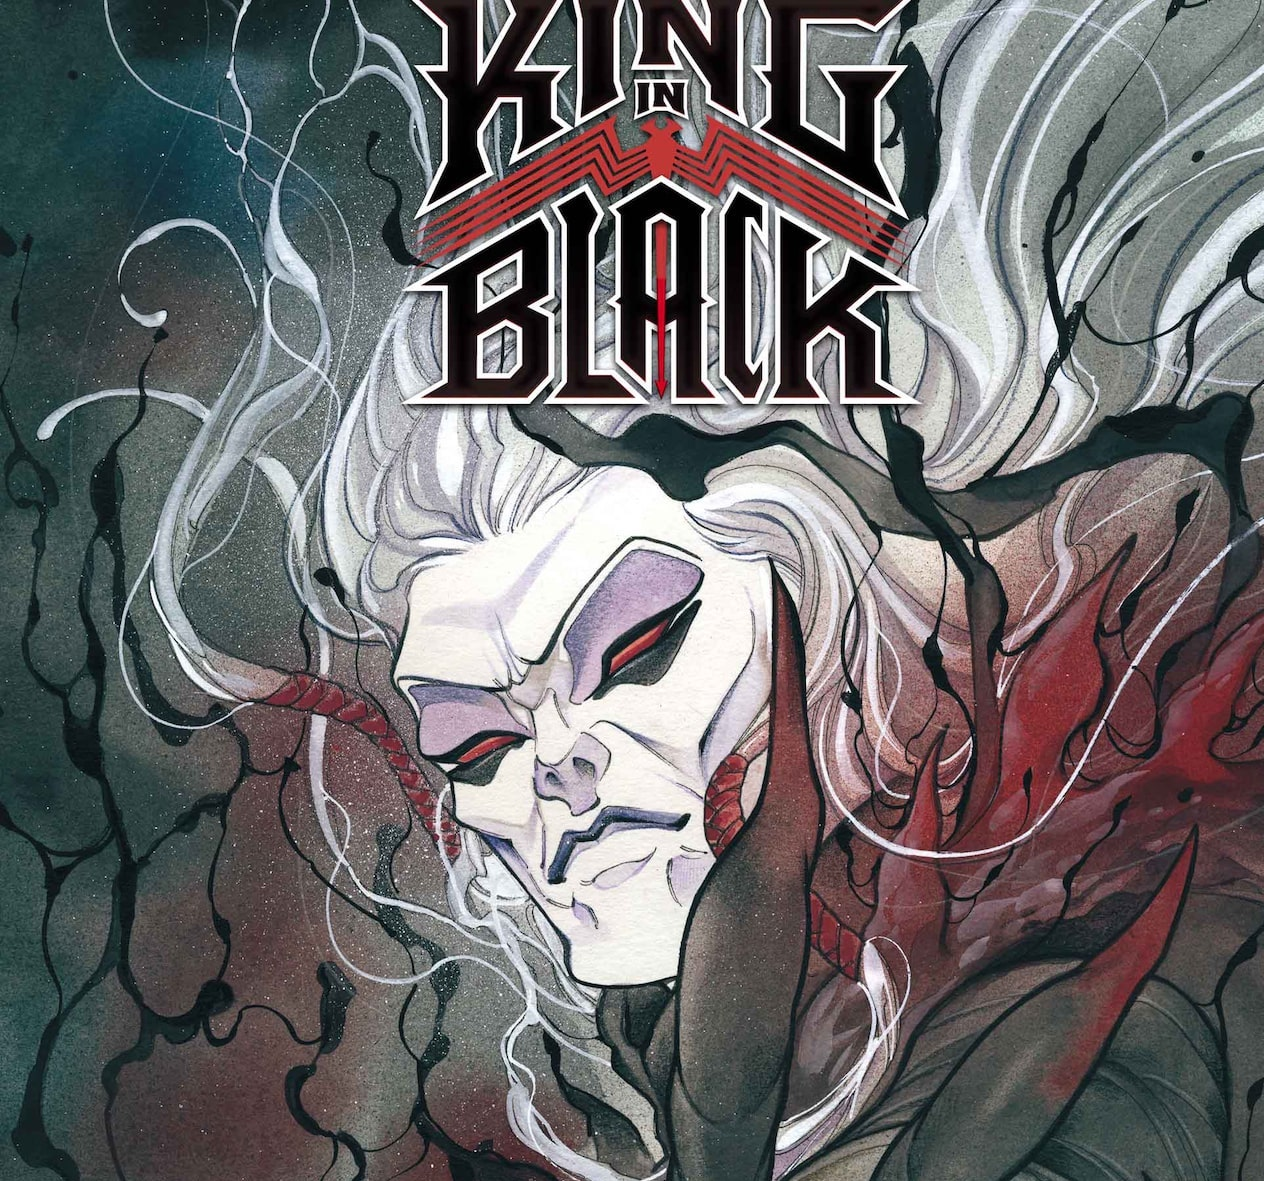 EXCLUSIVE Marvel First Look: King in Black #1 variant